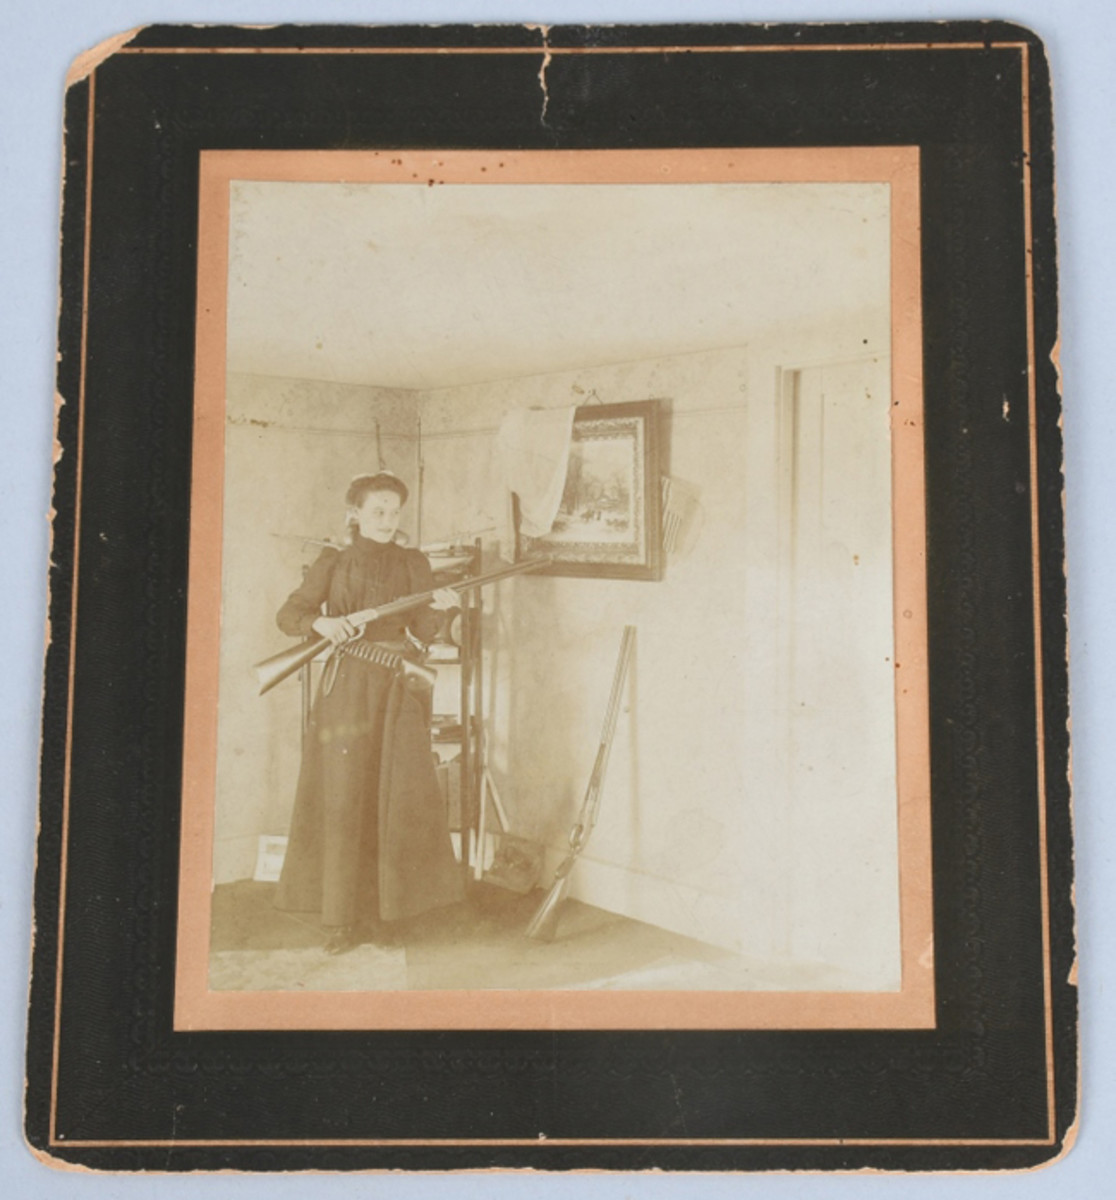 https://www.liveauctioneers.com/item/61937913_1899-annie-oakley-cabinet-card-w-multiple-weaponsOriginal circa-1899 cabinet card with rare, never-reproduced image of Annie Oakley inside a house with firearms, bullets, and a knife. Photo - Milestone Auctions